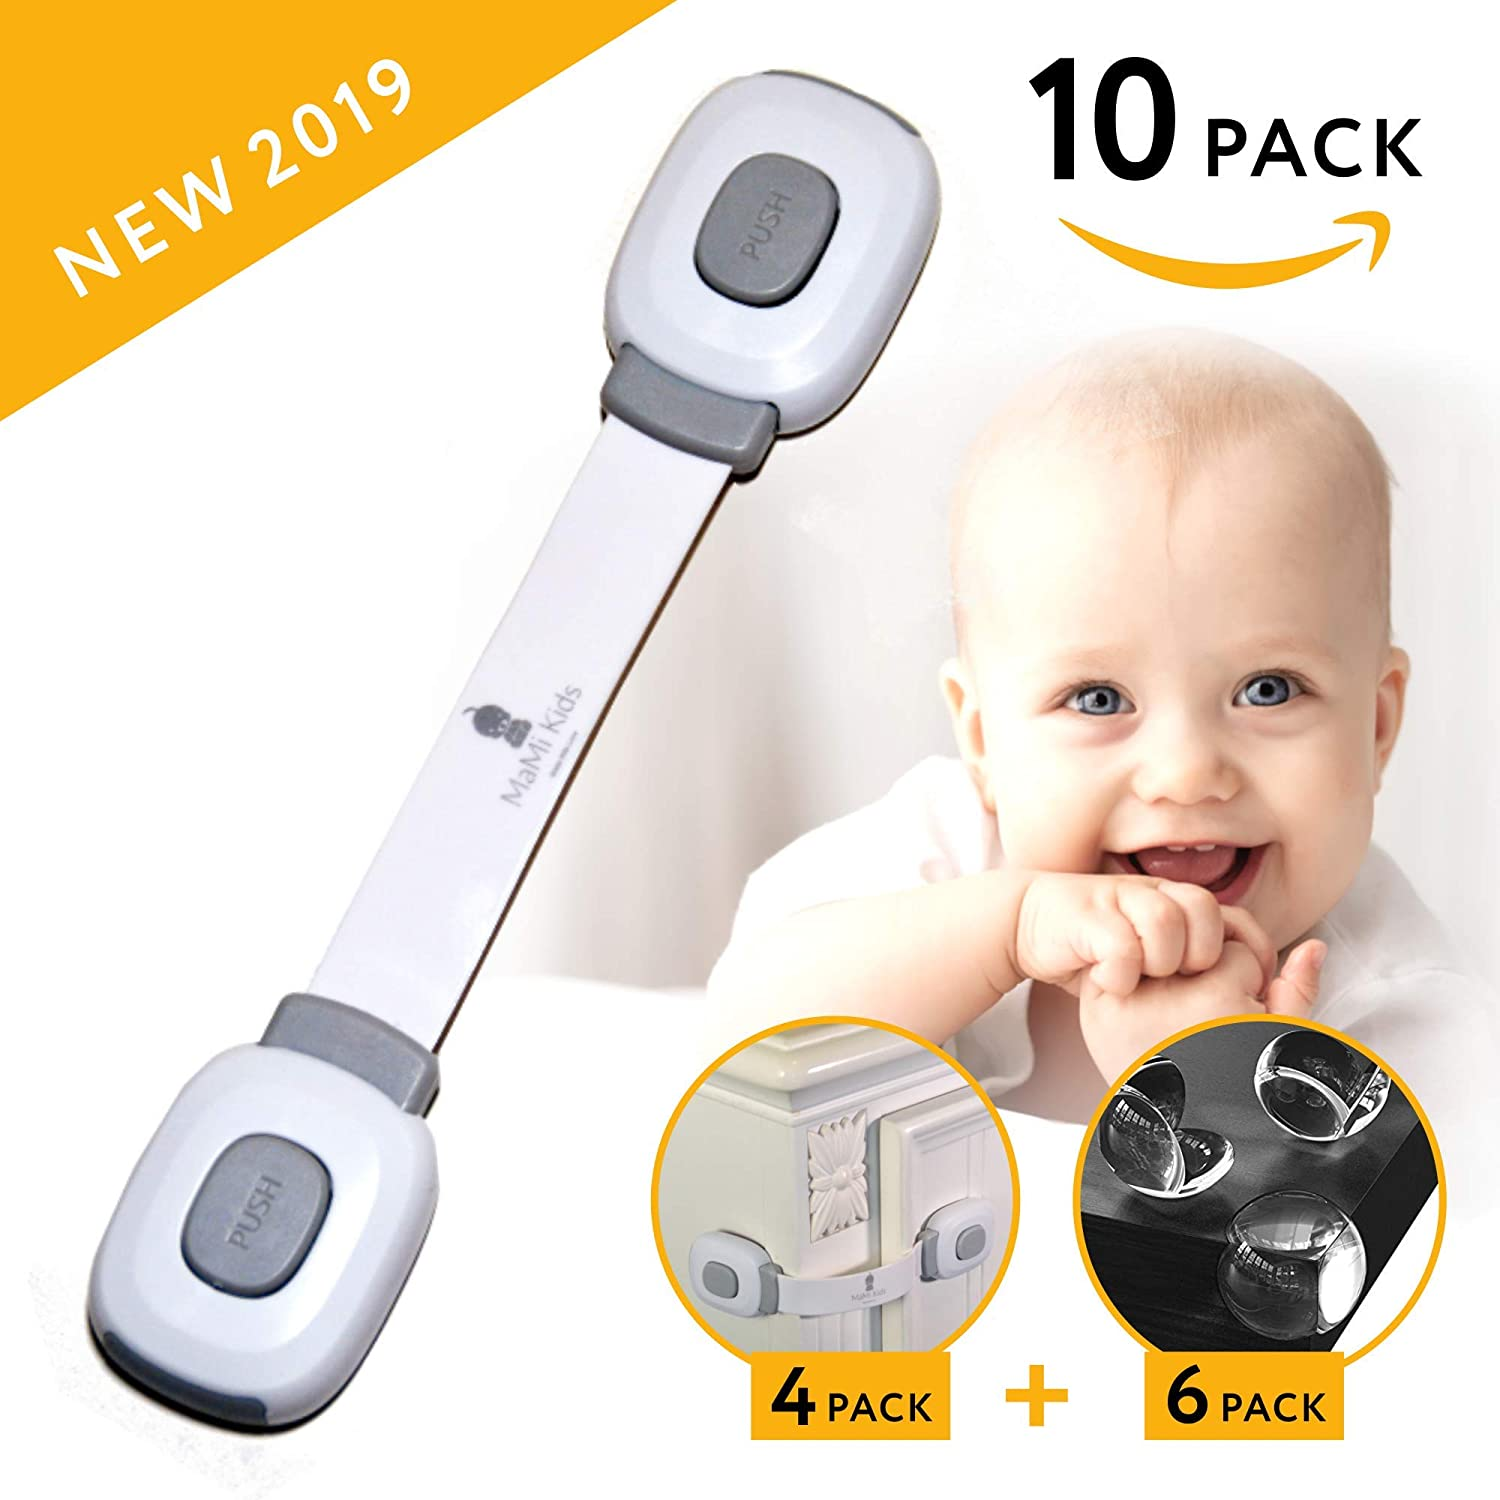 Baby Safety Cabinet Locks | Baby Proofing | Easy To Install | Cabinet Locks | Refrigerator Lock | Edge Protectors | Drawer Locks Child Safety | Door Locks for Kids | Door Latch (4 Locks + 6 Corners)